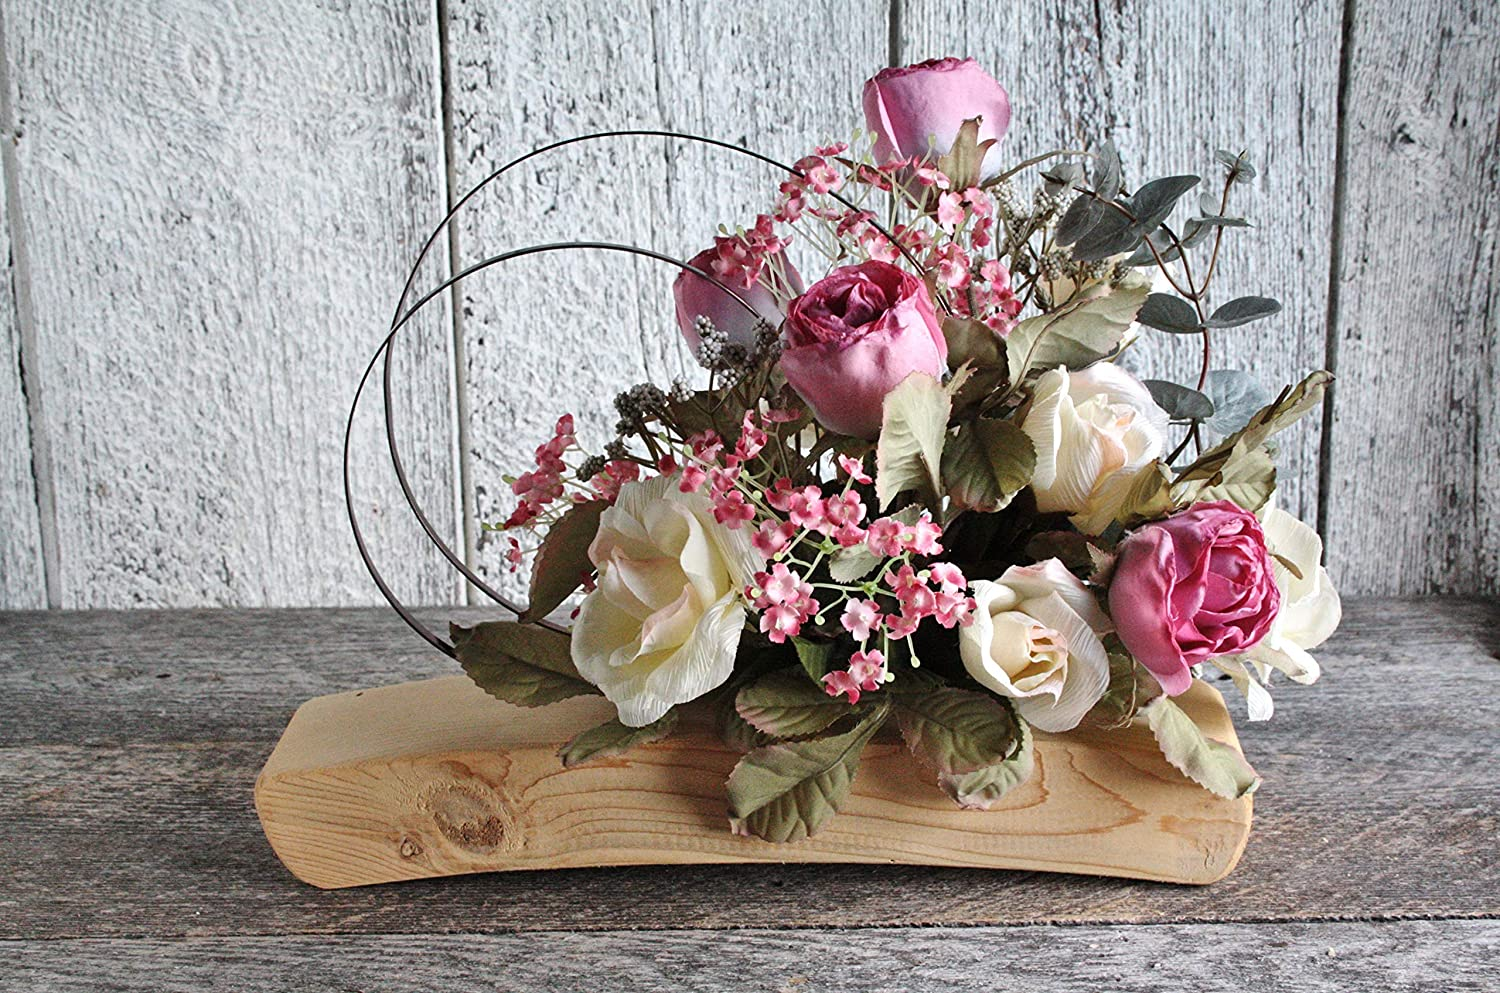 Handmade Rustic Wooden Centerpiece Garnished With Flowers Country Wedding Table Decor Reception Decor Silk Flower Home Decor Rustic Centerpiece Amazon Ca Handmade